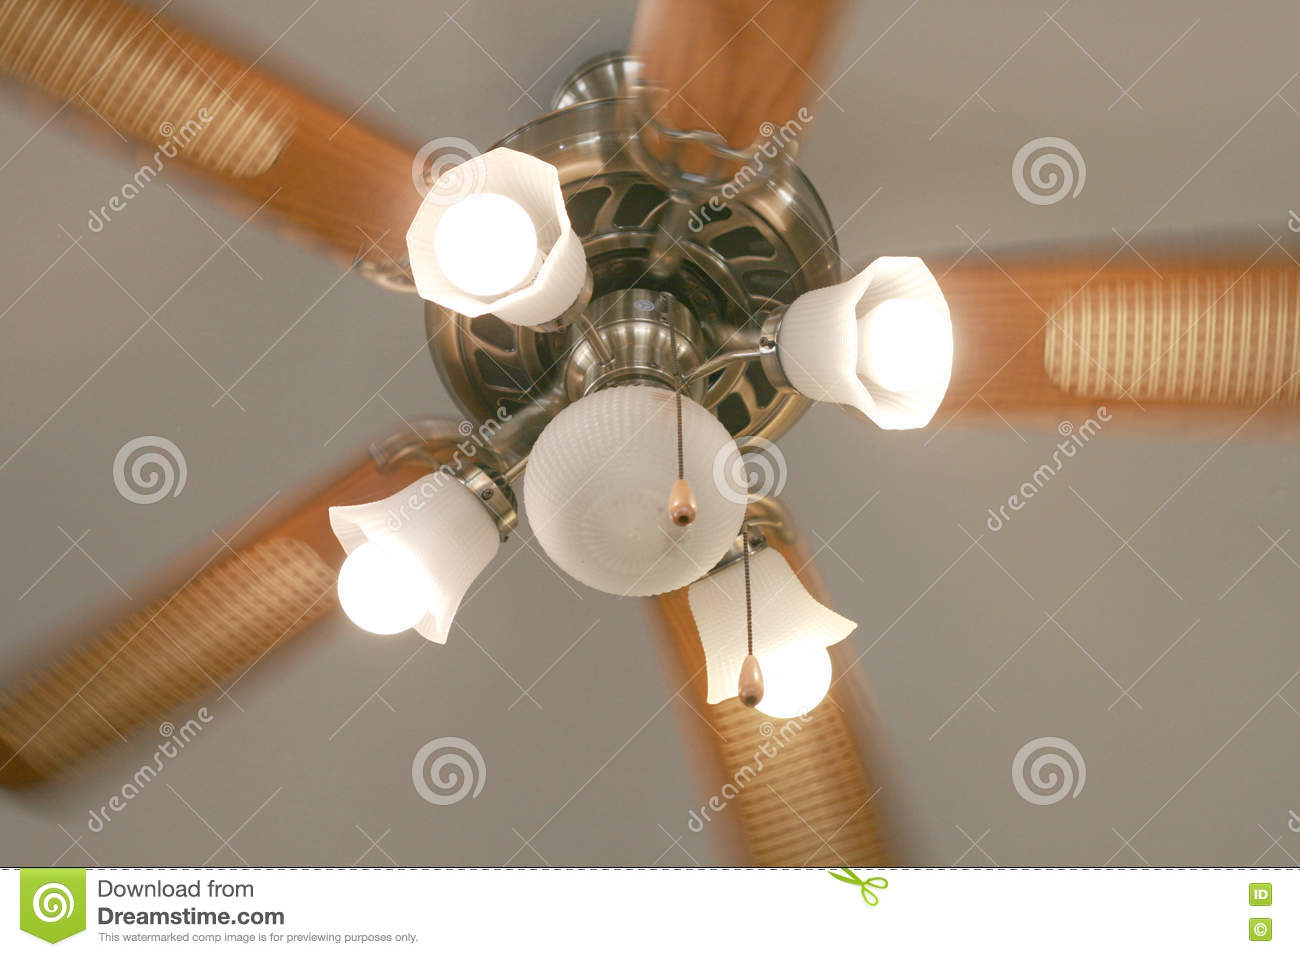 Moving ceiling fan with lamp in vintage style stock photo   image ...